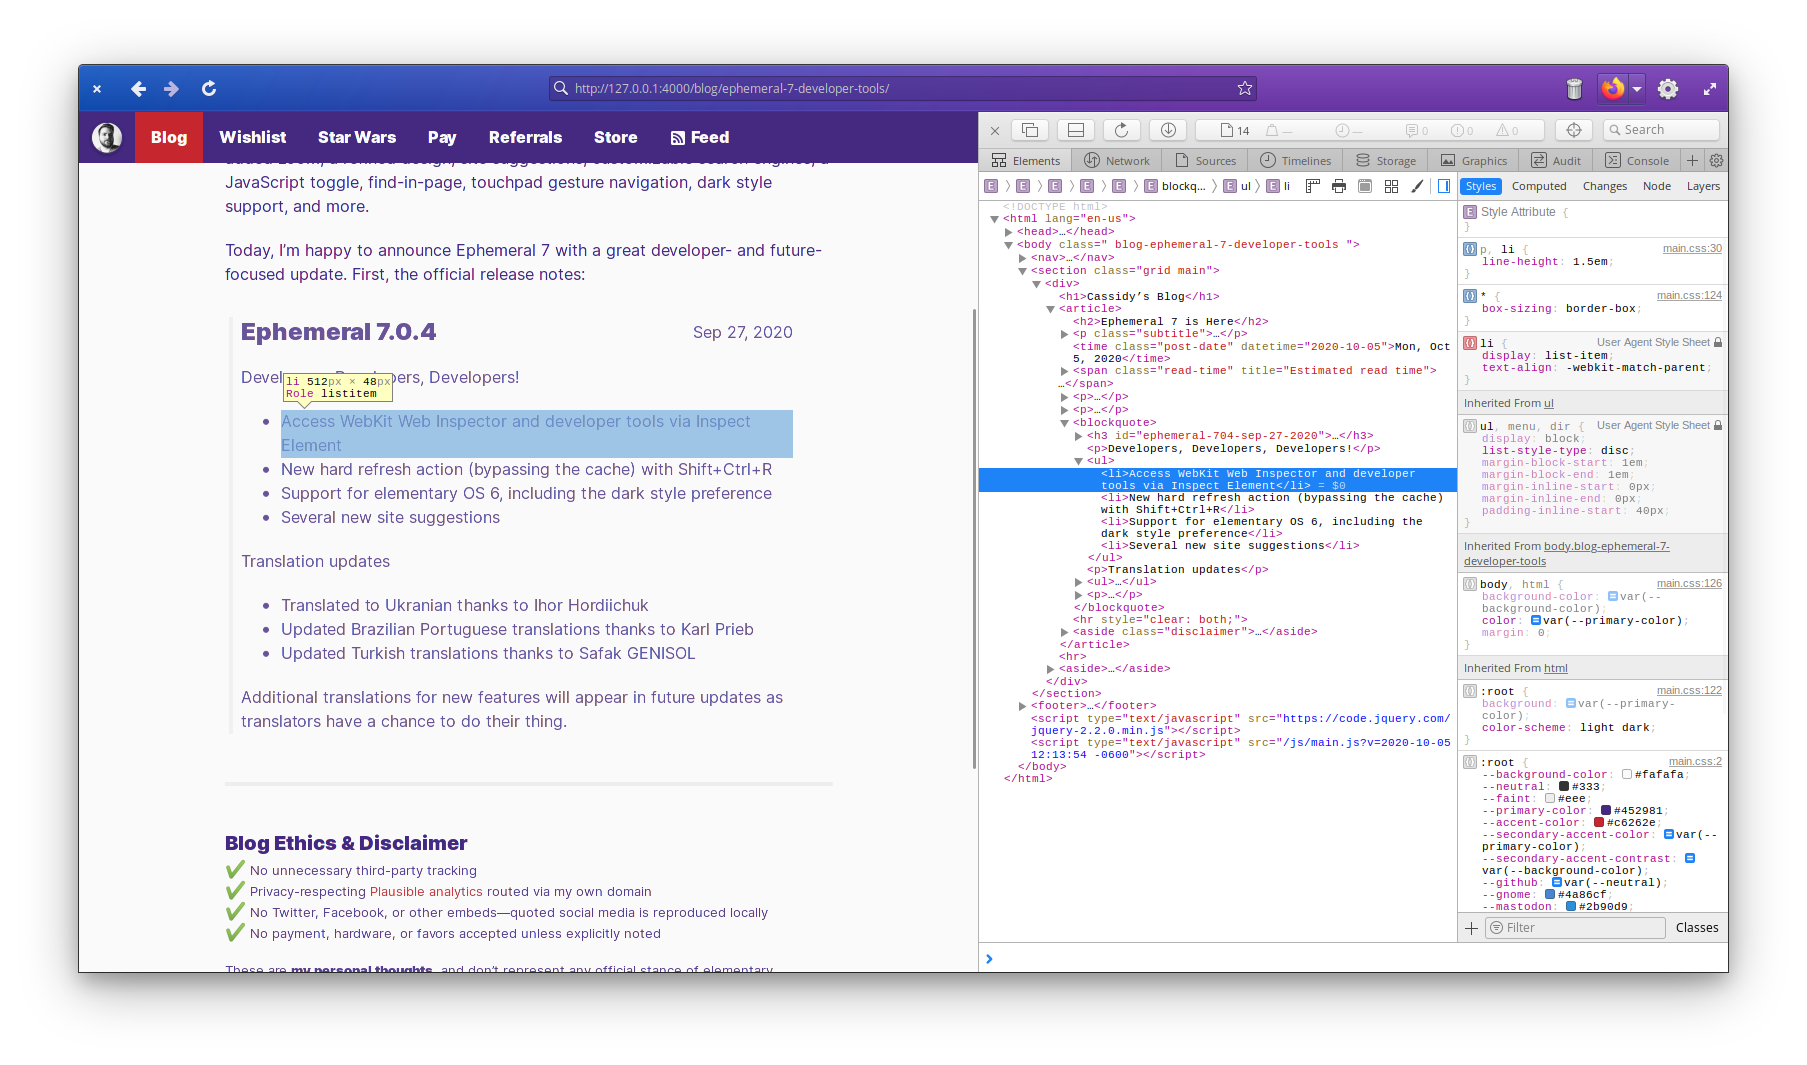 WebKit Web Inspector, docked to the side